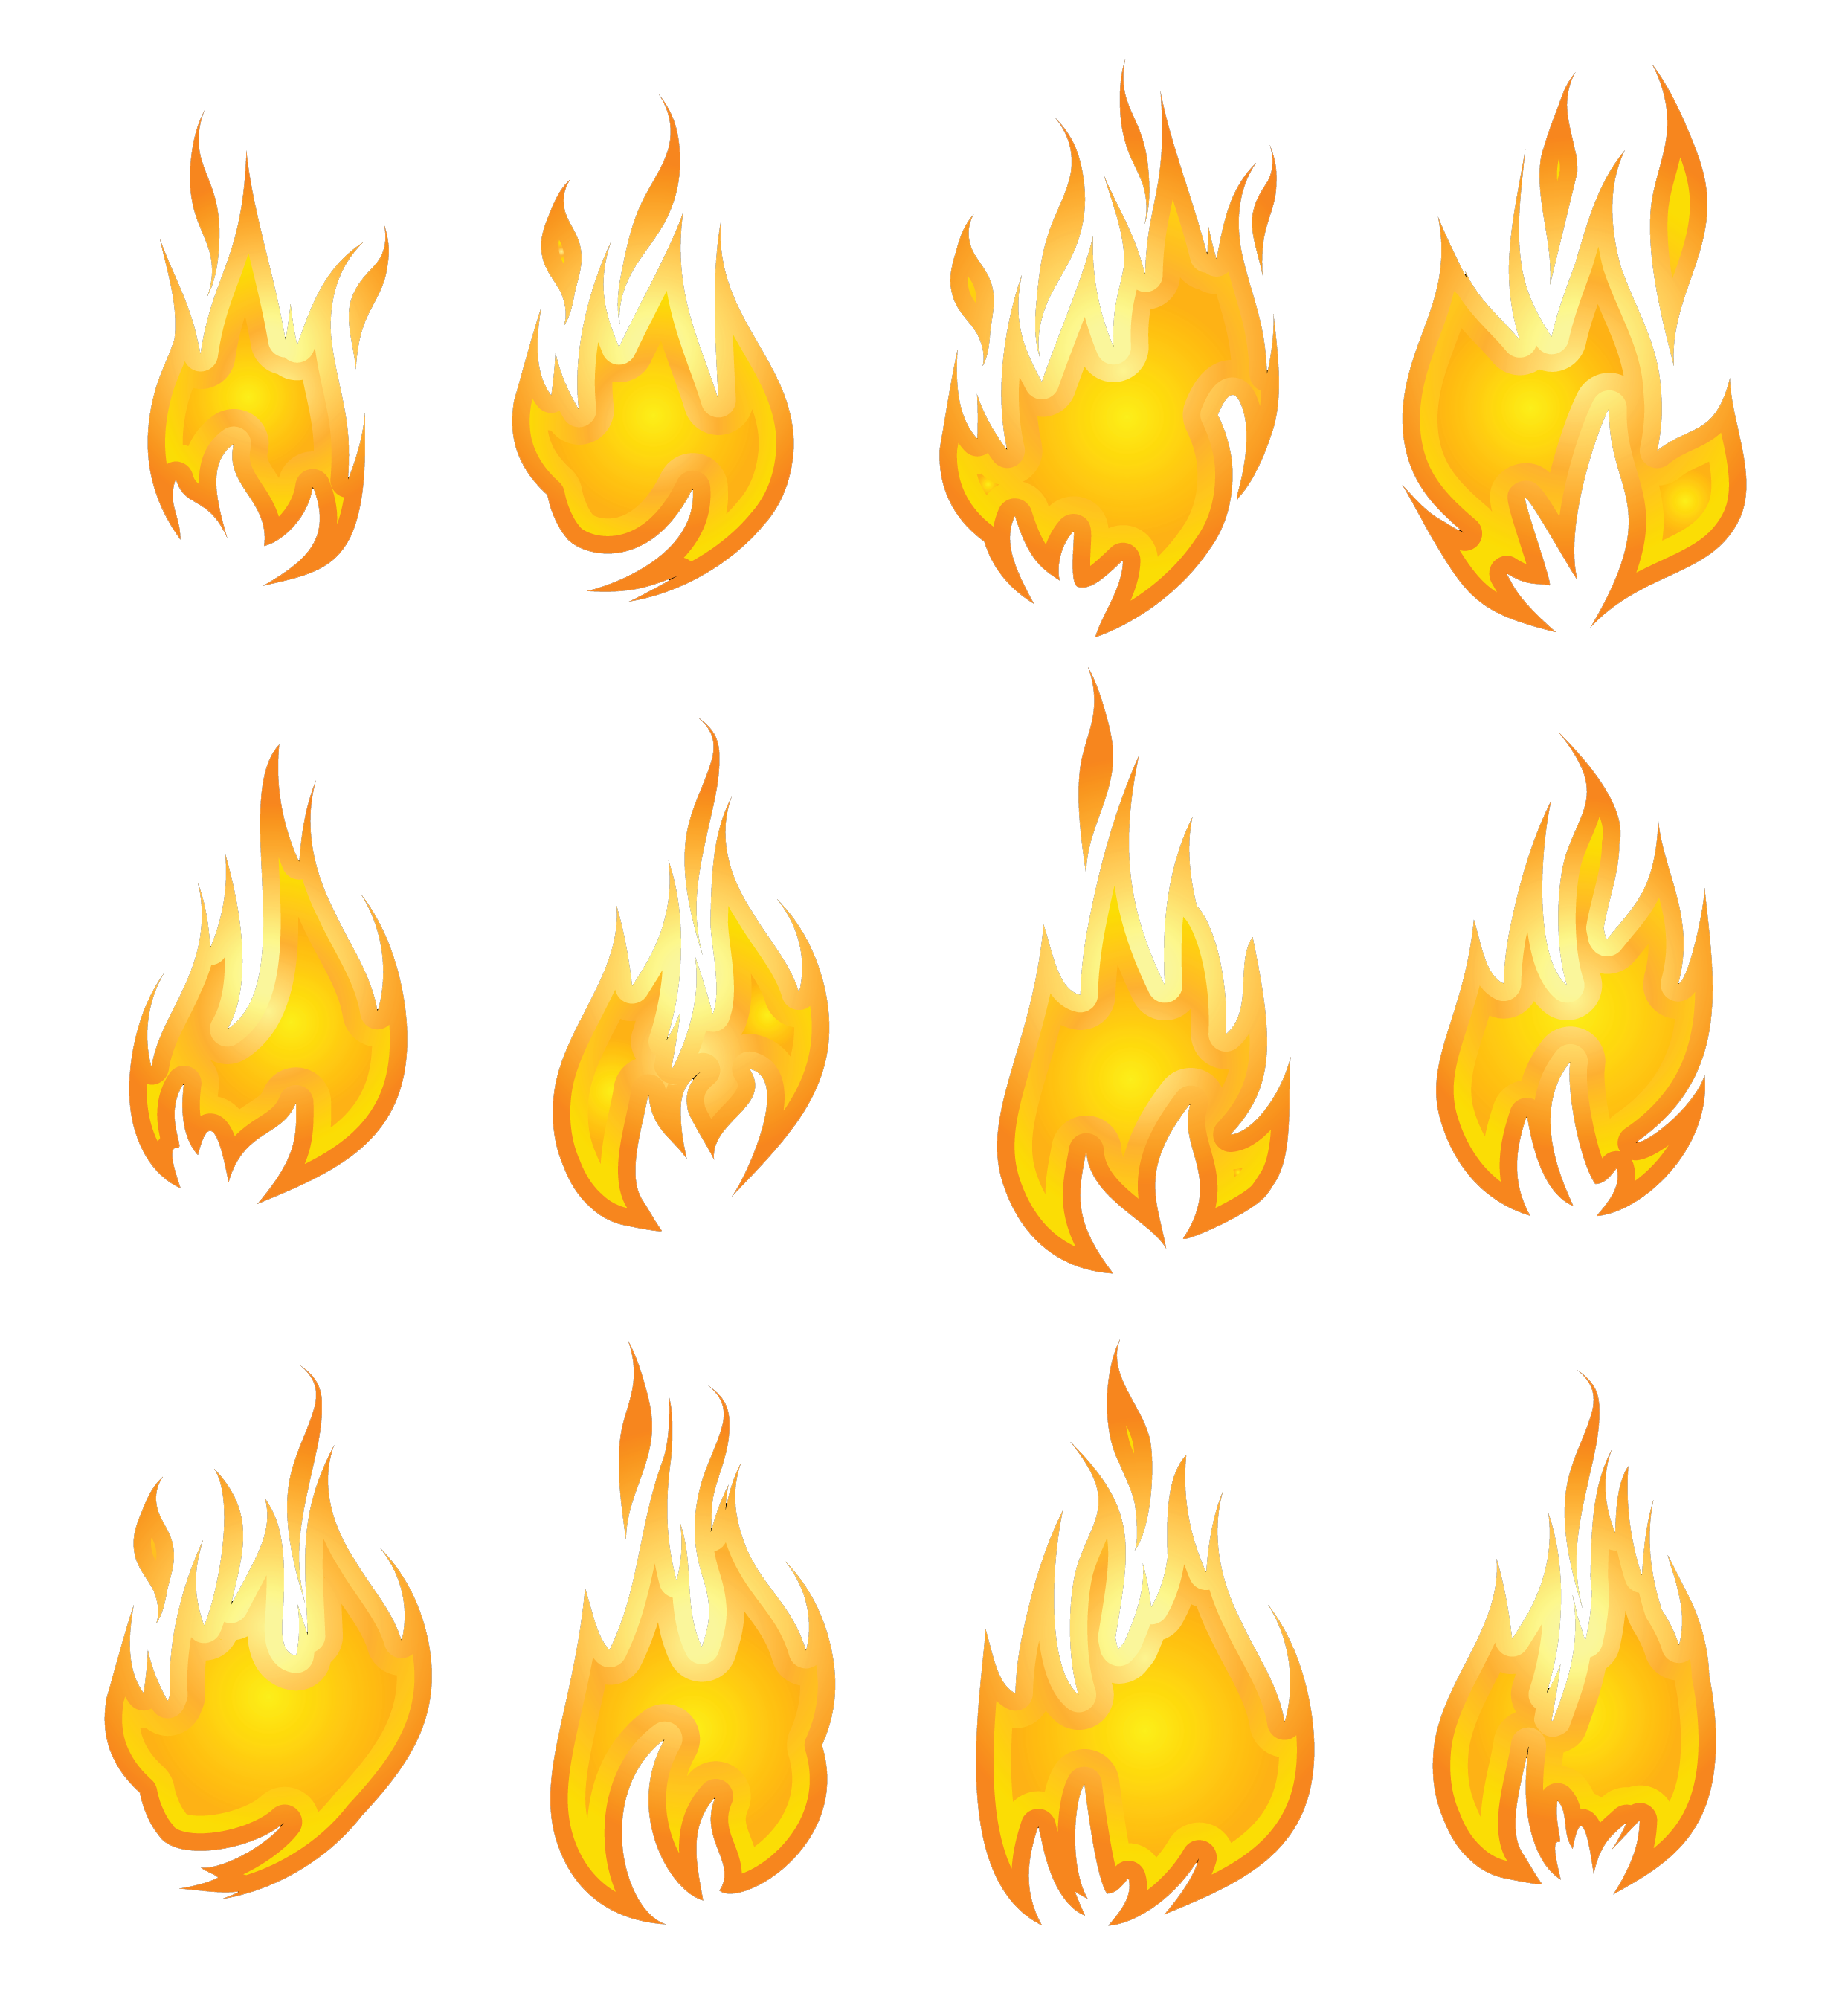 Flames clipart simple fire. Flame png